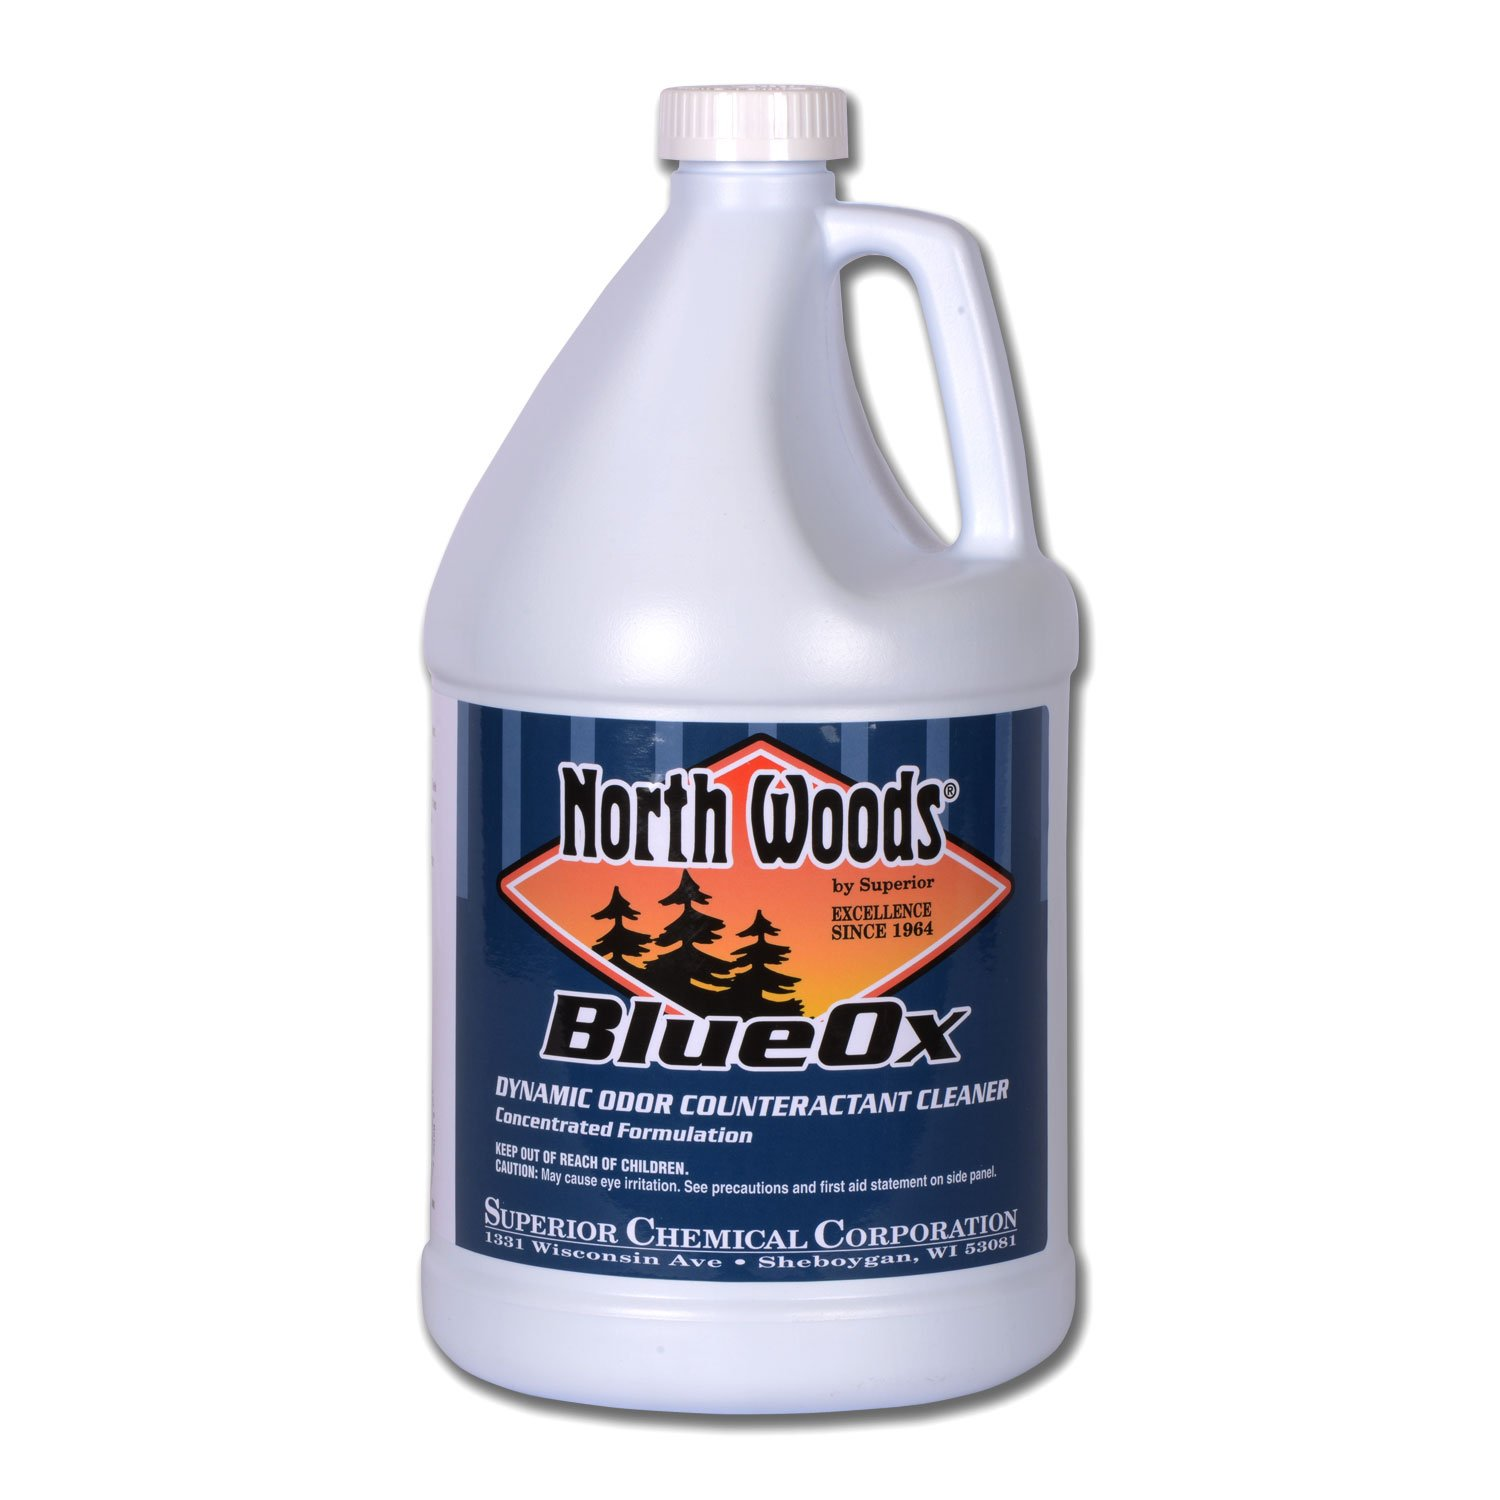 North Woods Blue Ox - Concentrare Cleaner & Odor Counteractant (Pack of 4)